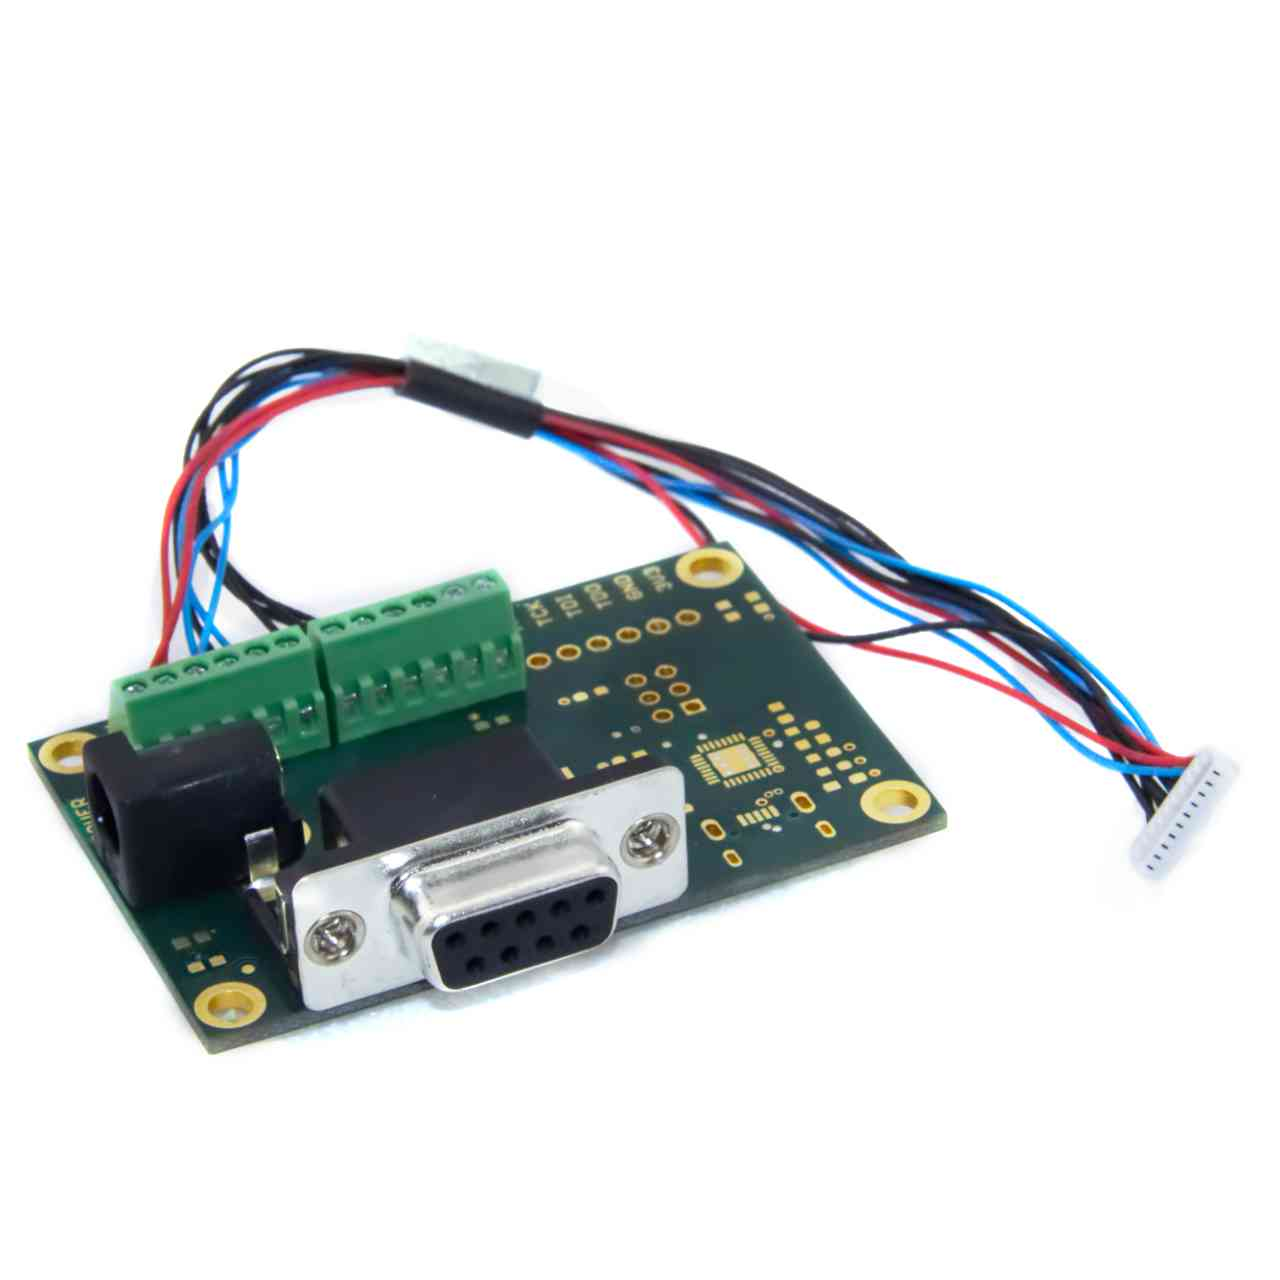 EK-PA1100 |Power supply and control interface board